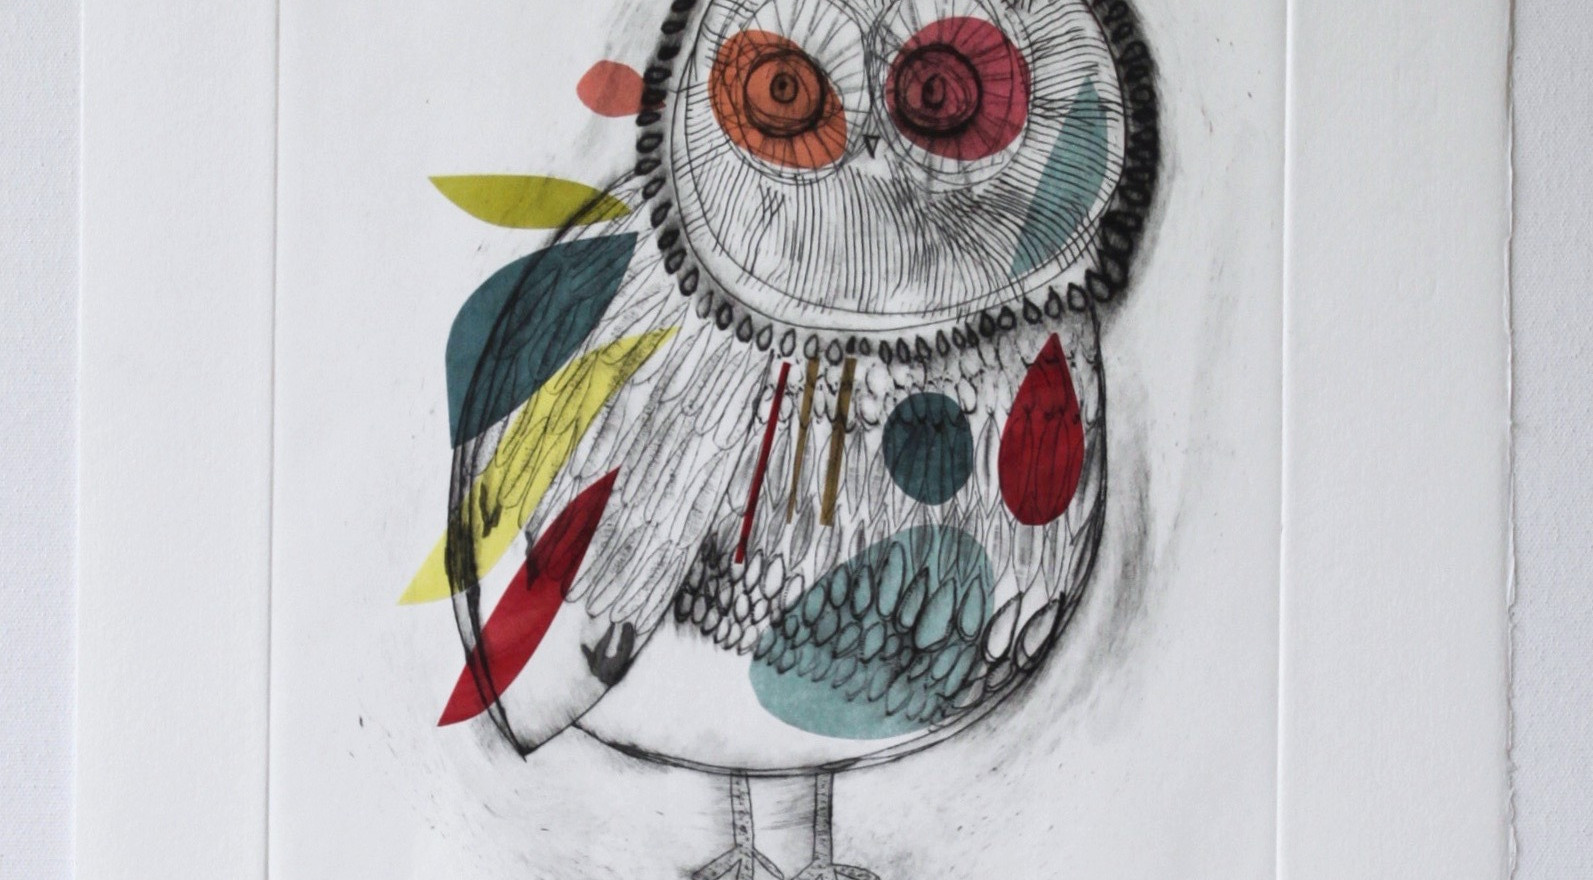 Picasso Owl, engraving 14 of 40 with chine-collé made in Barcelona, 35 x 50cm